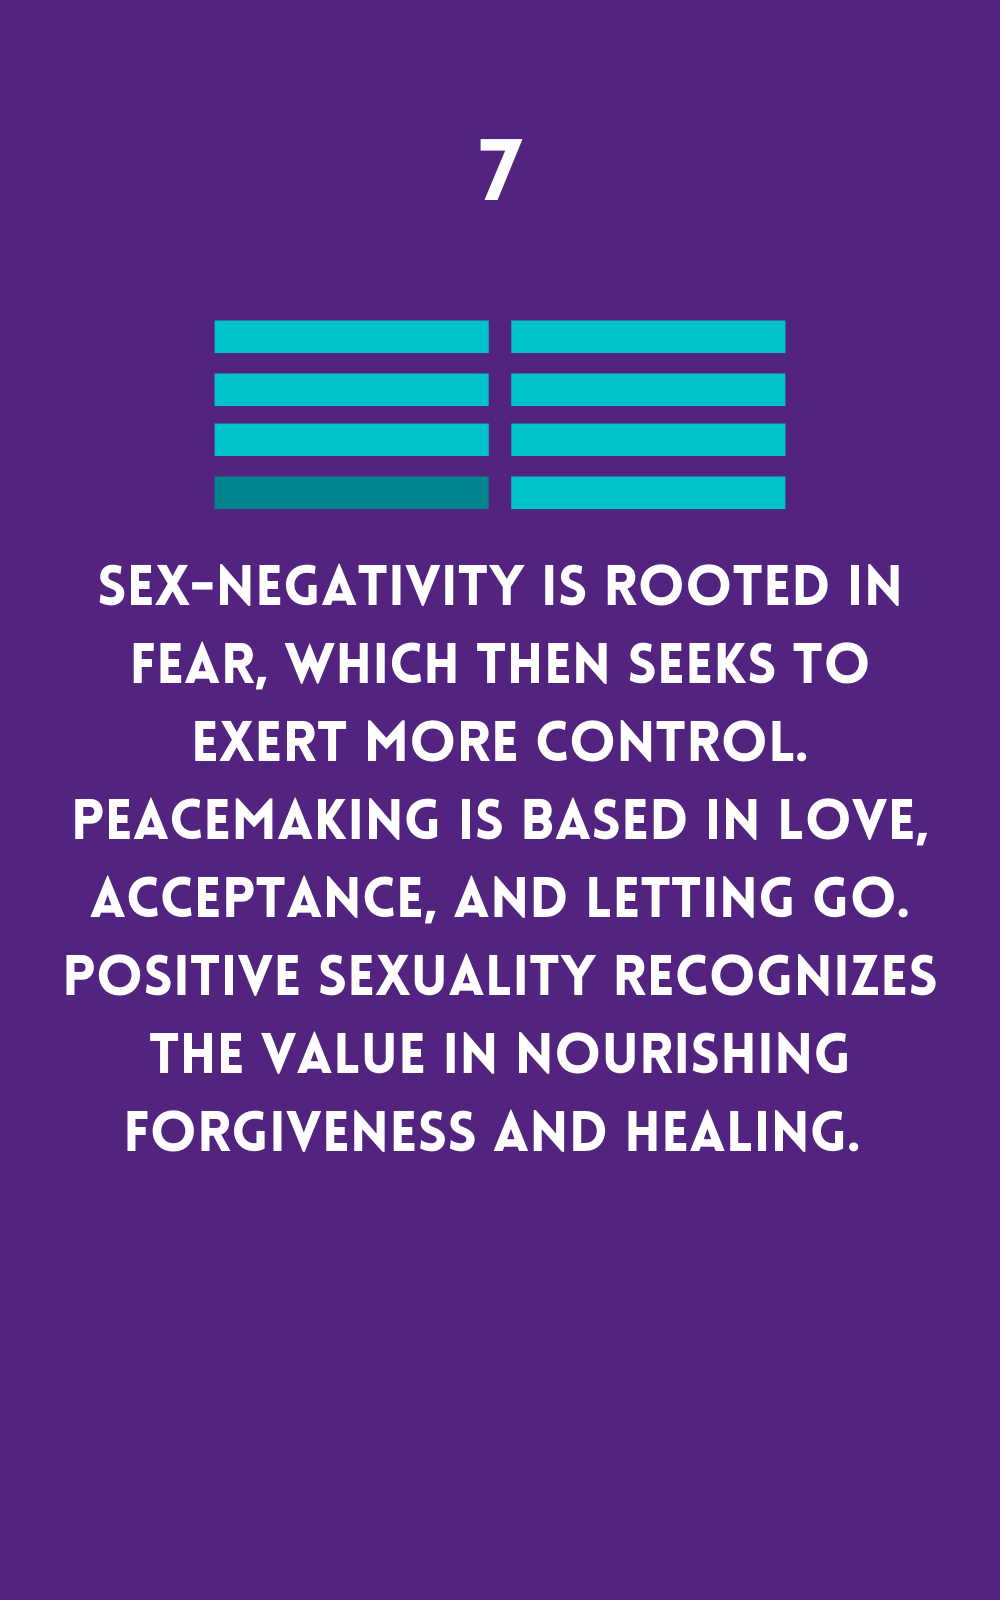 Peacemaking is based in love